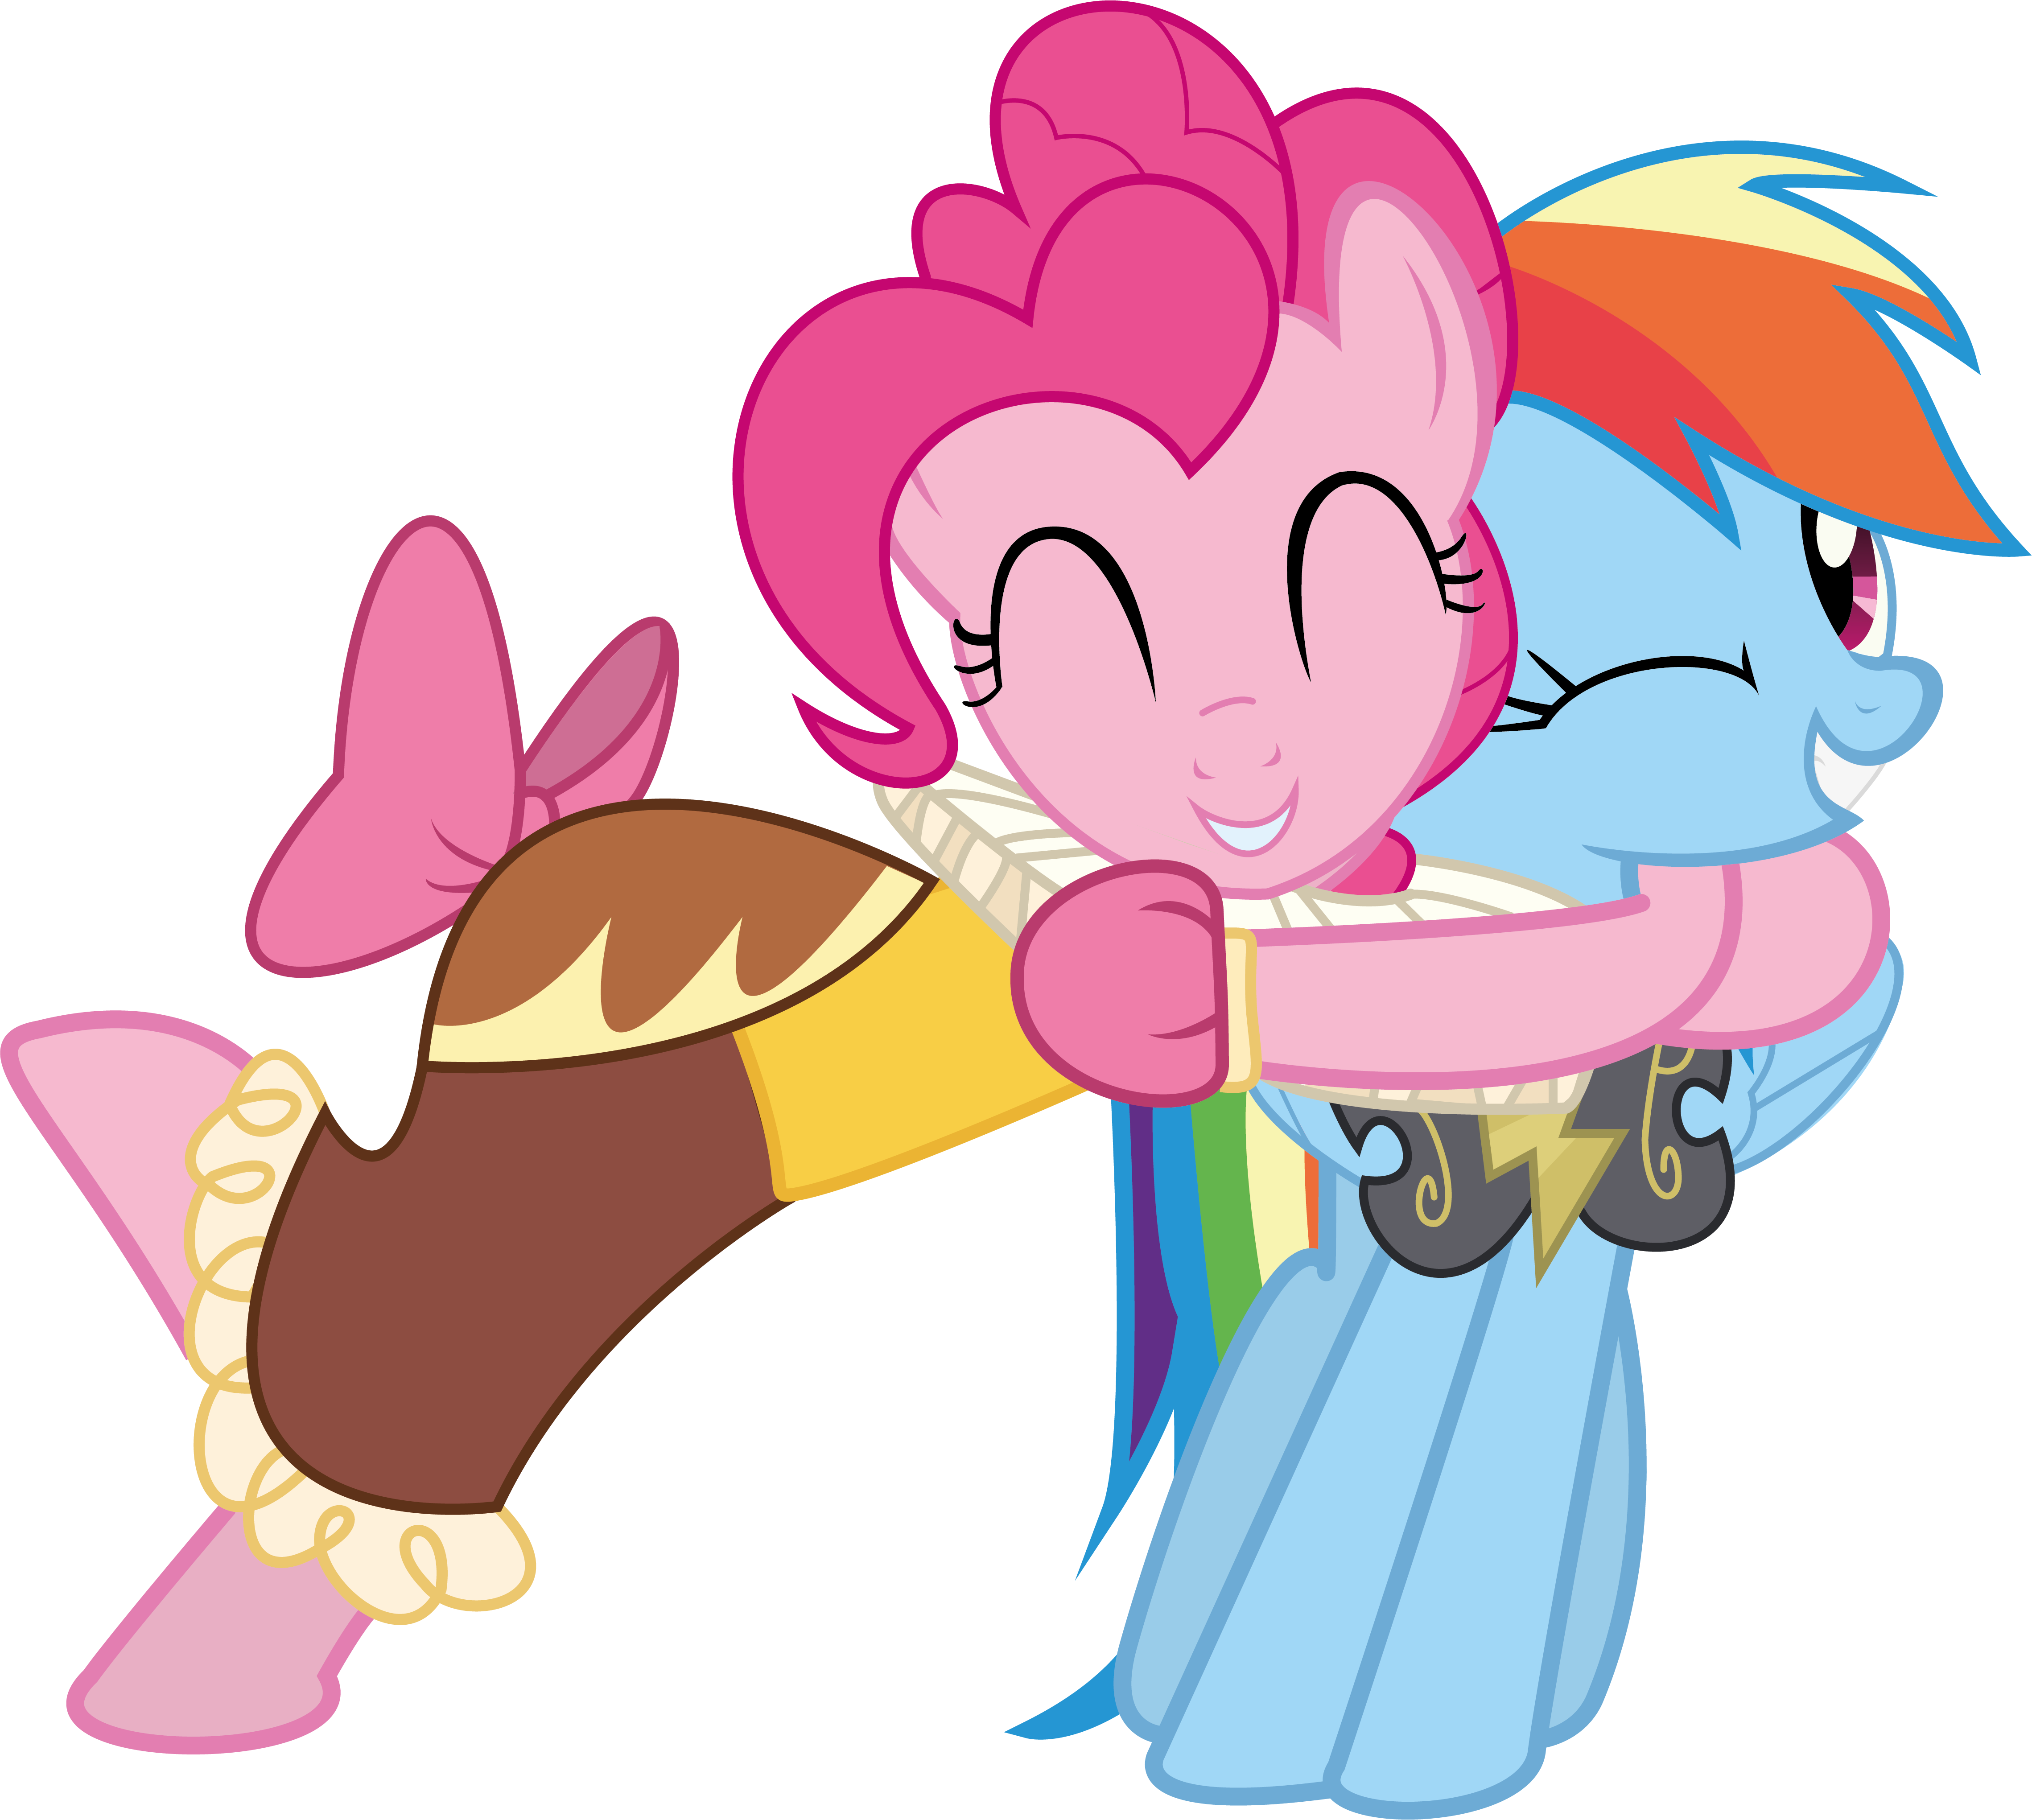 Friendship clipart buddy. Image my little pony